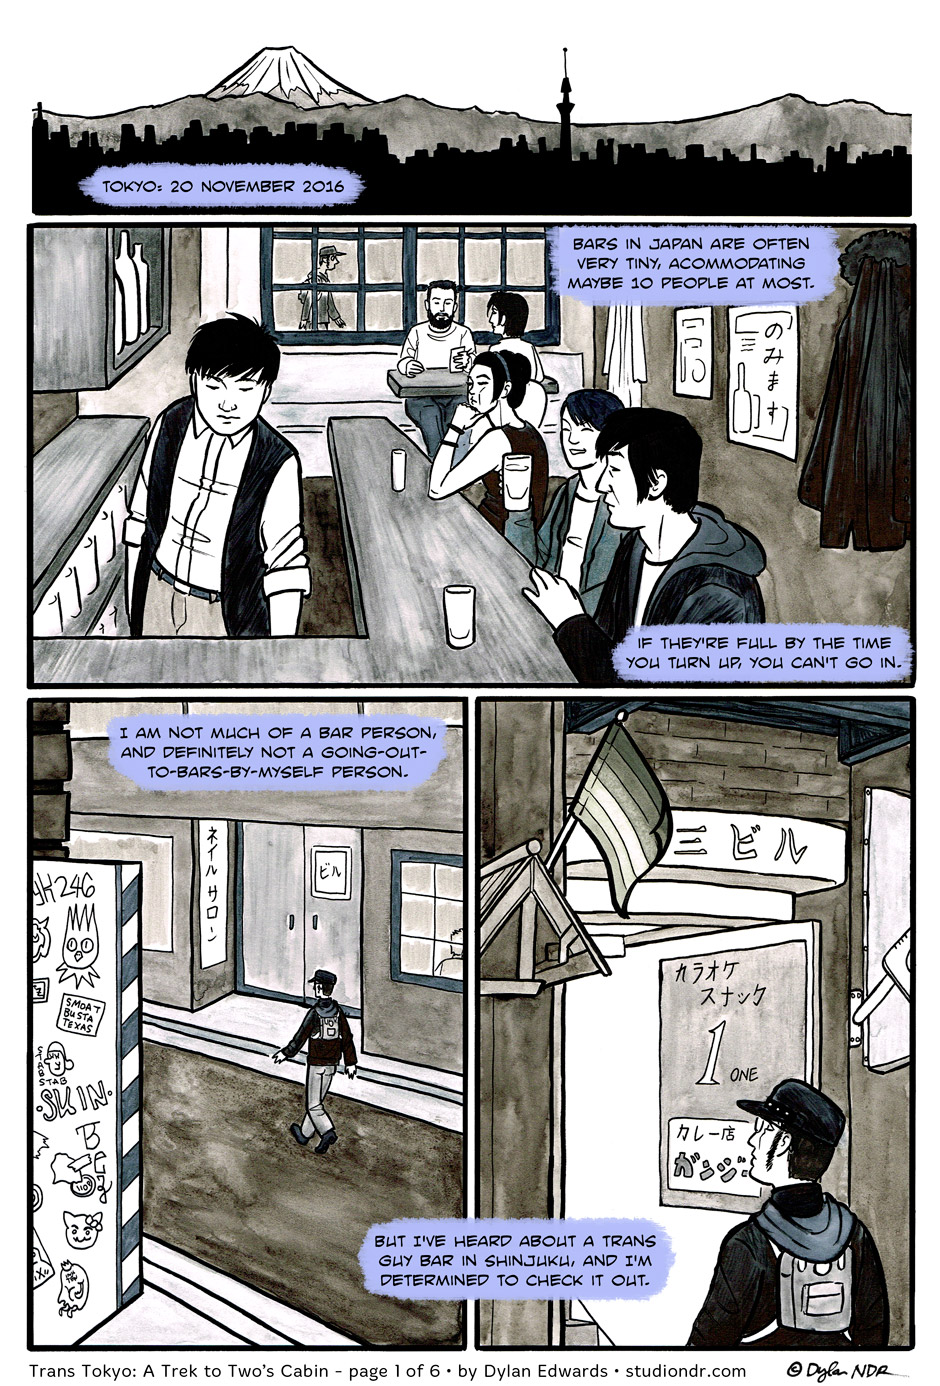 Trans Tokyo: A Trek to Two's Cabin - page 1